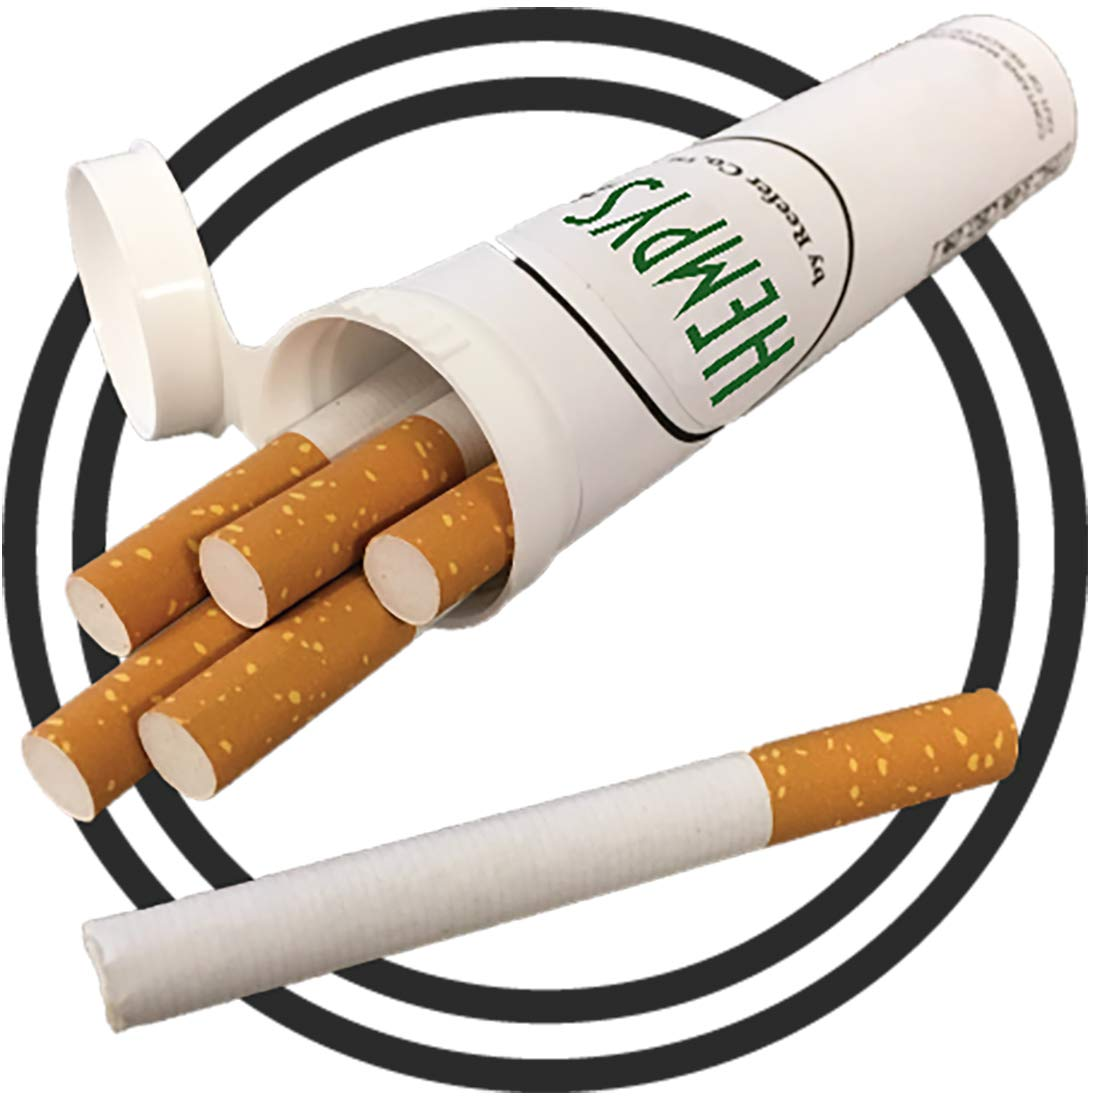 Premium Tobacco-Free Hempettes (15 Total Fresh Prerolled Herbal Smokes) by Hempys